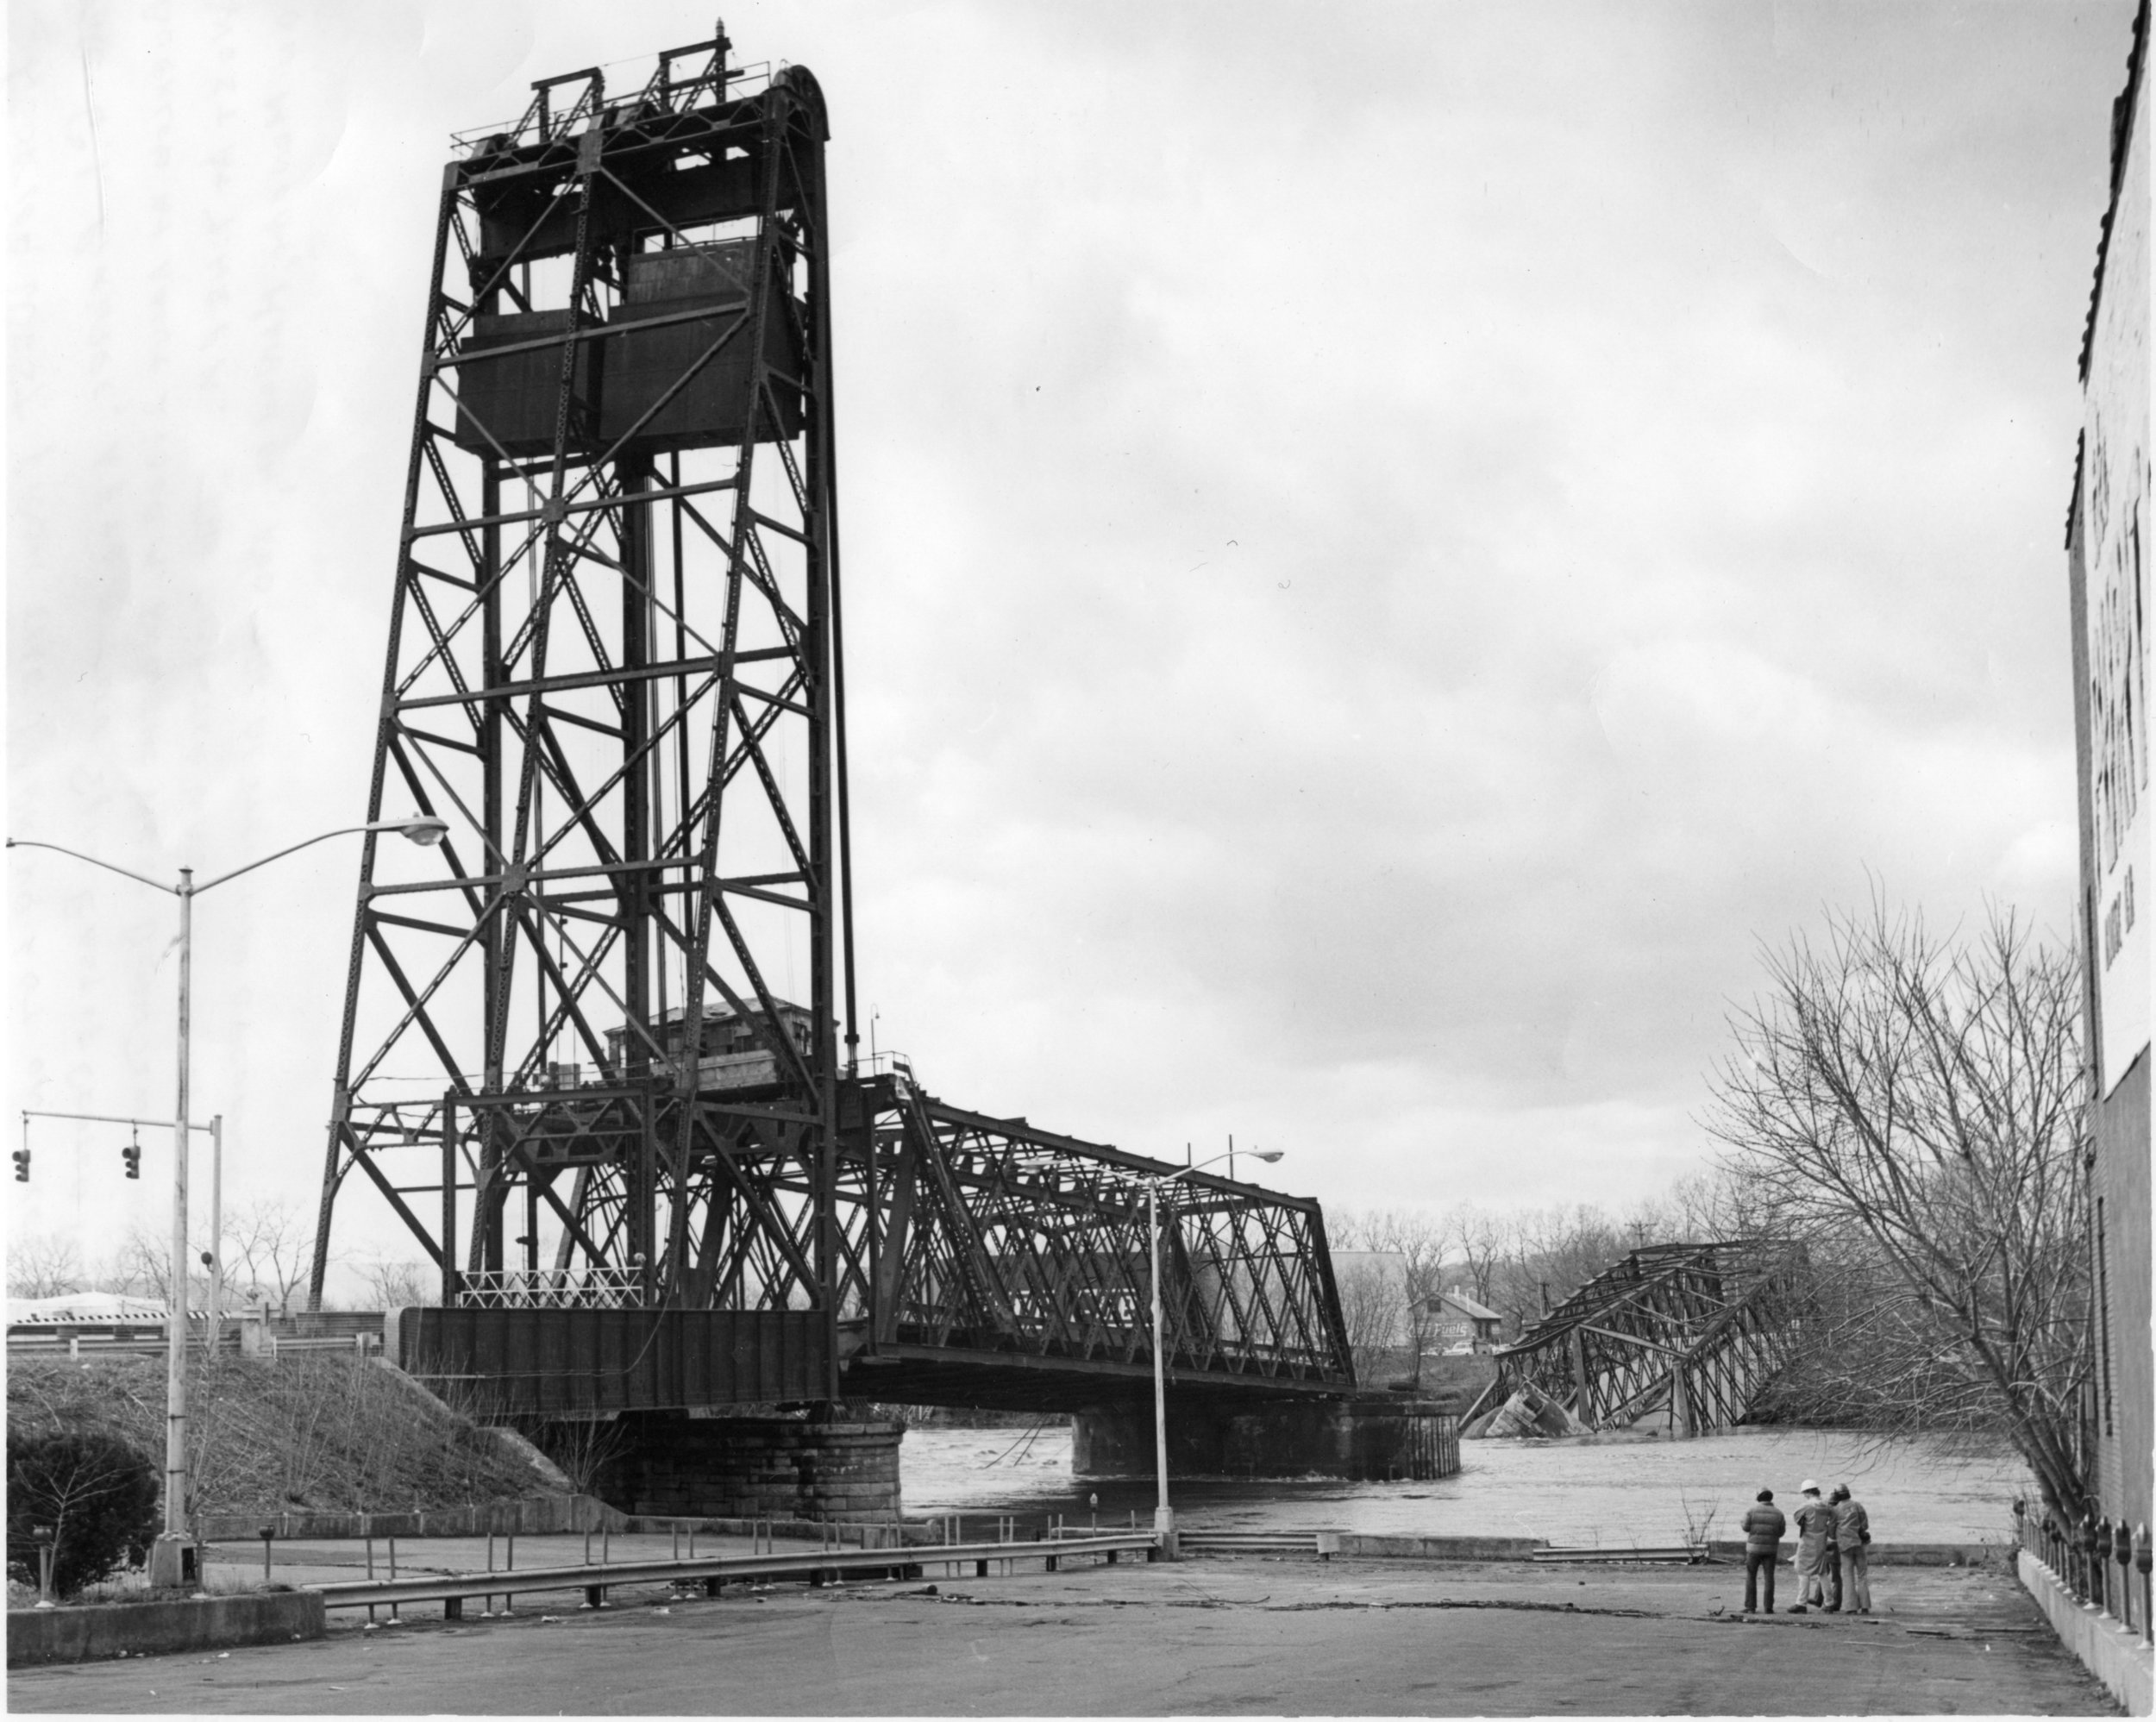 GI Bridge Gene Baxter 03-15 1977 lkg west draw tower and span collapsed.jpg